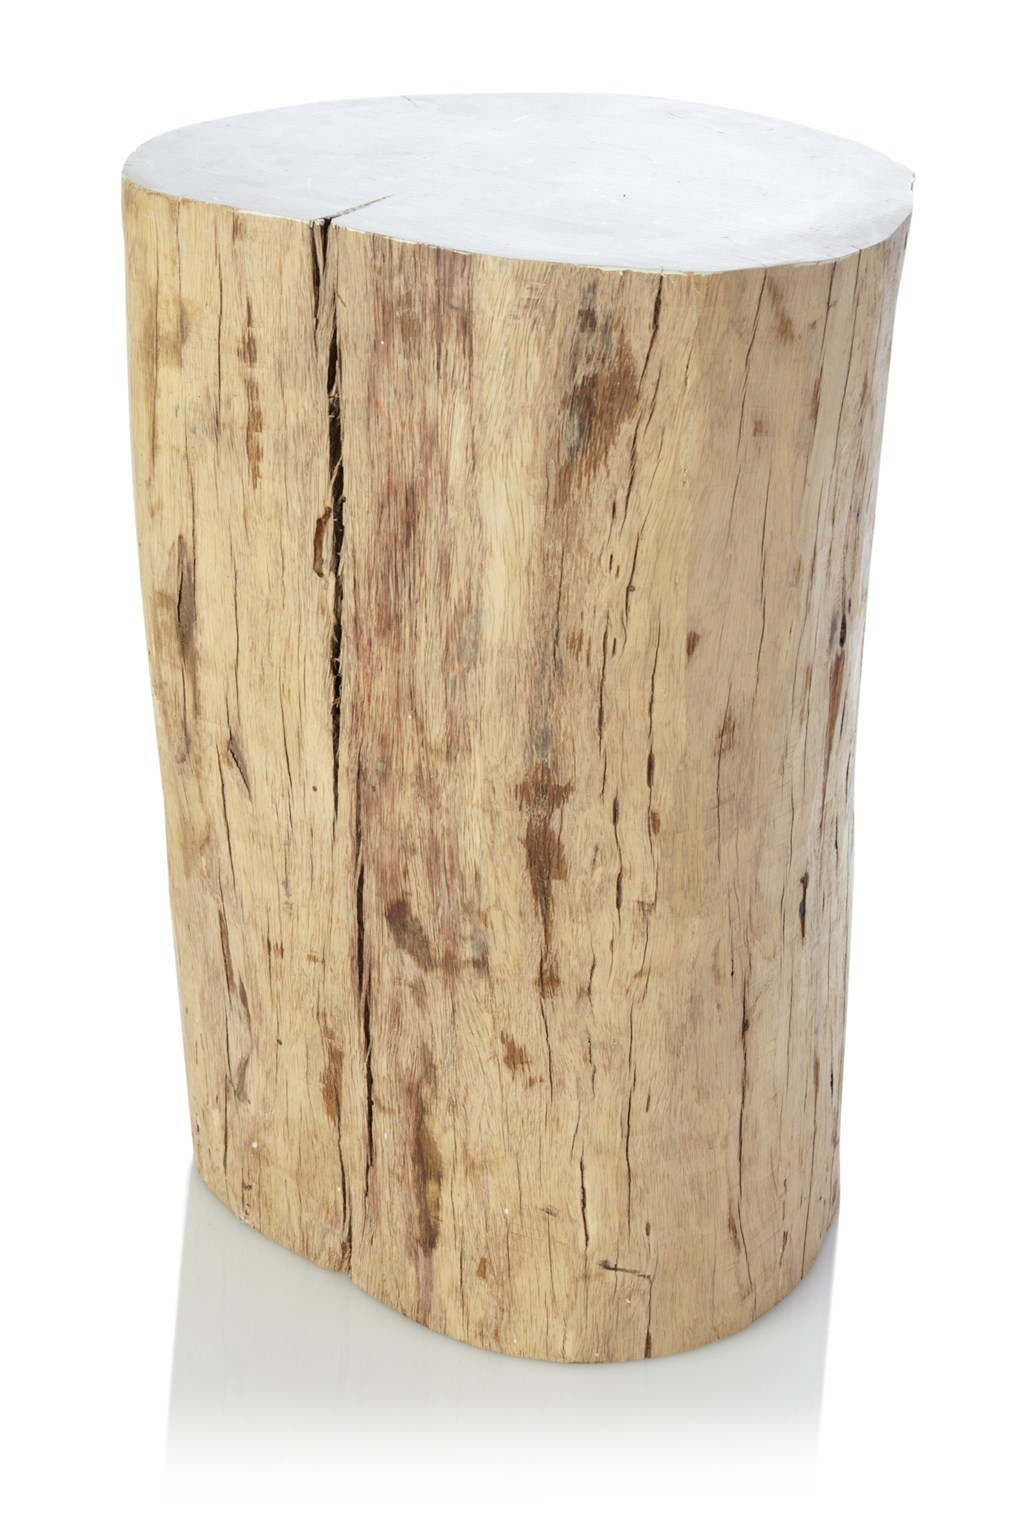 Tree Trunk Coffee Tables Uk - New Grounds Coffee